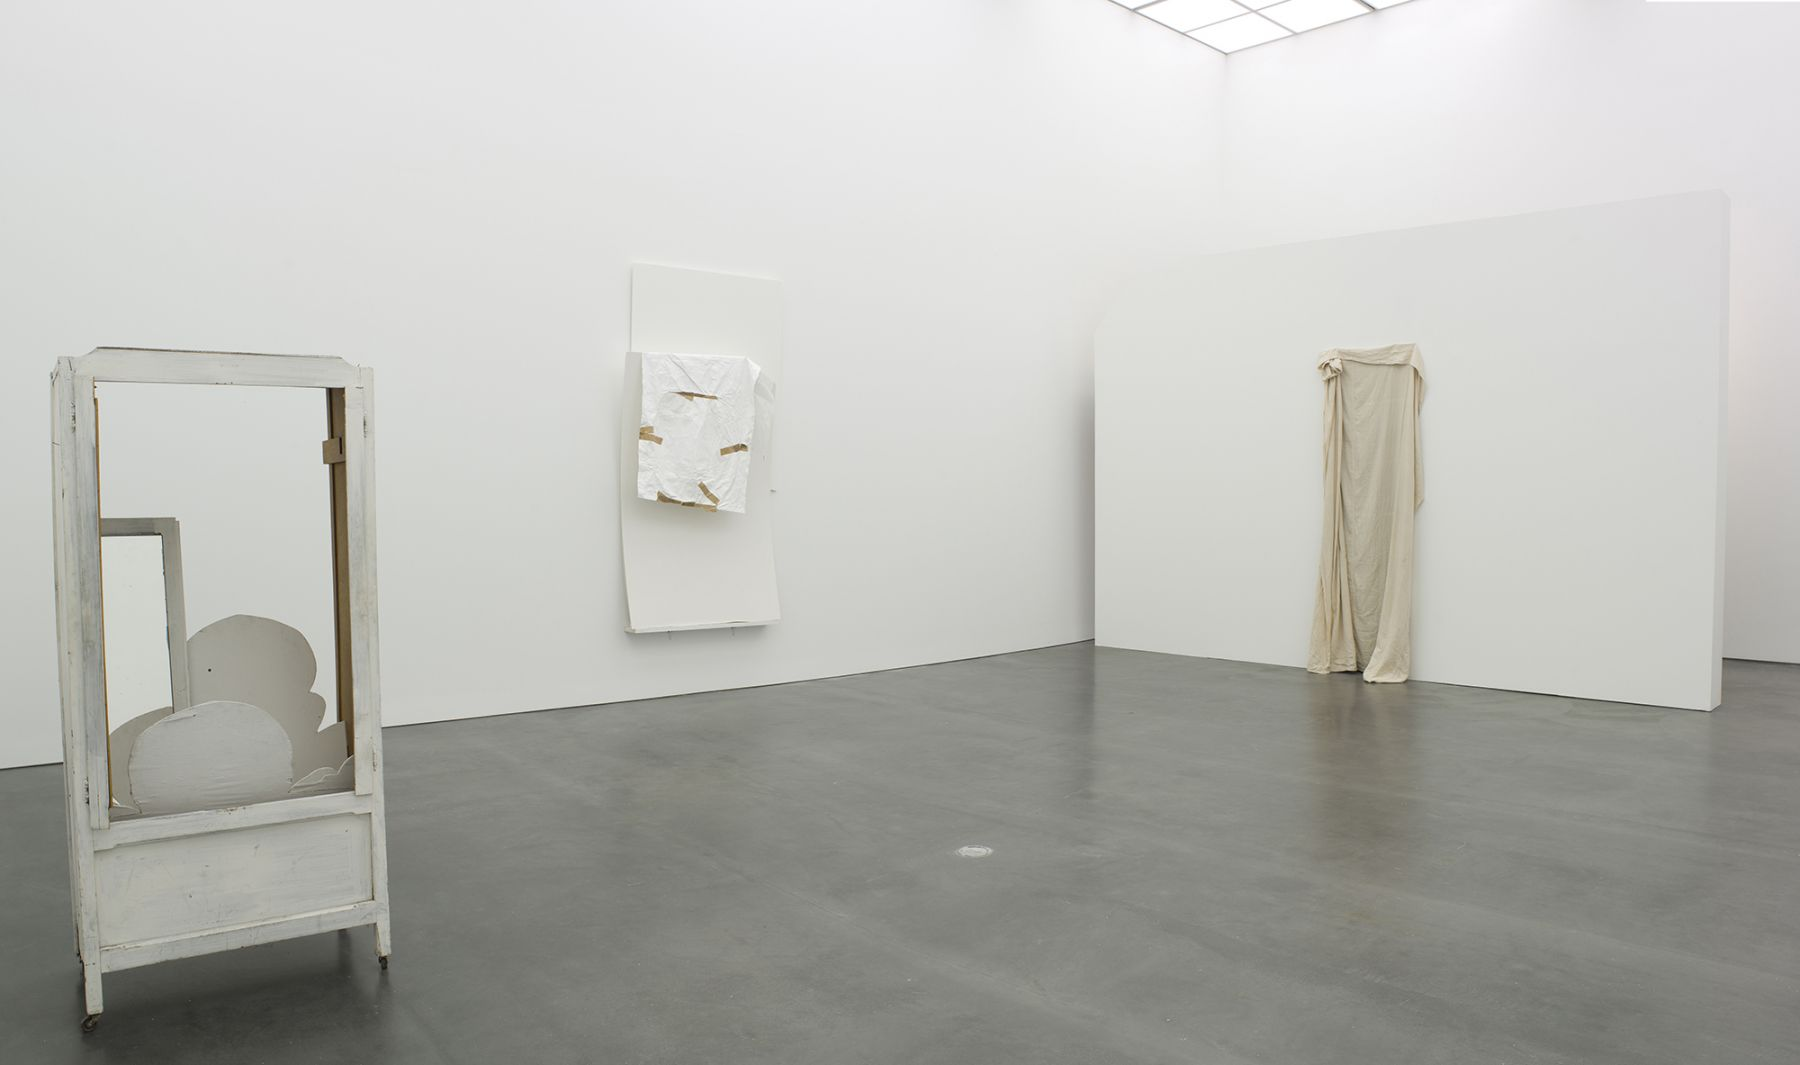 Installation view, The Language of Less, Museum of Contemporary Art, Chicago, 2011